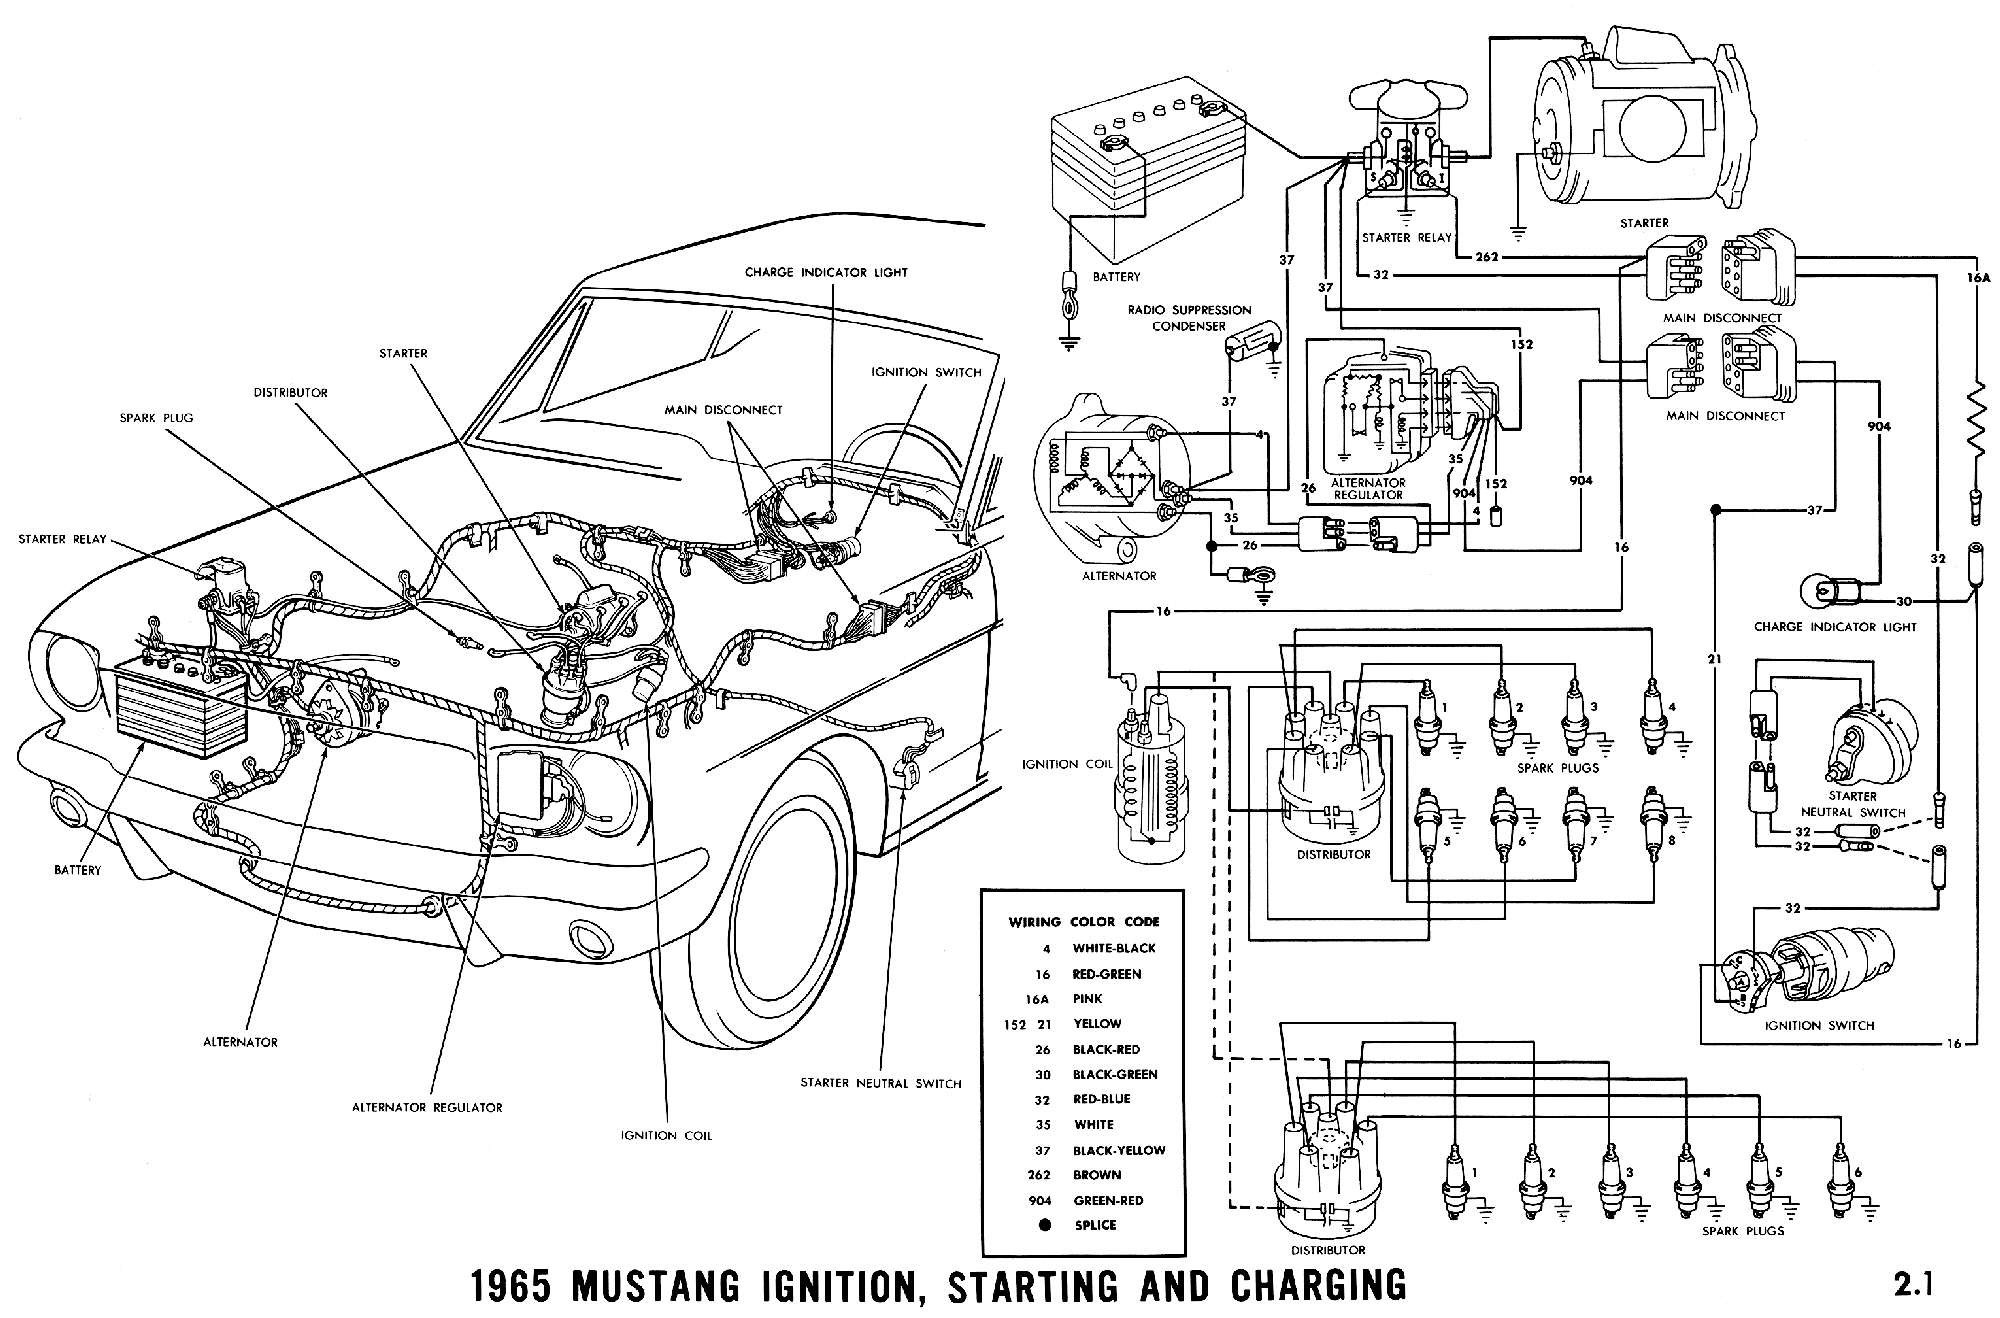 Diagram Of Car Components Porsche 944 Engine Oil Flow 2015 Mustang Parts And Ponent